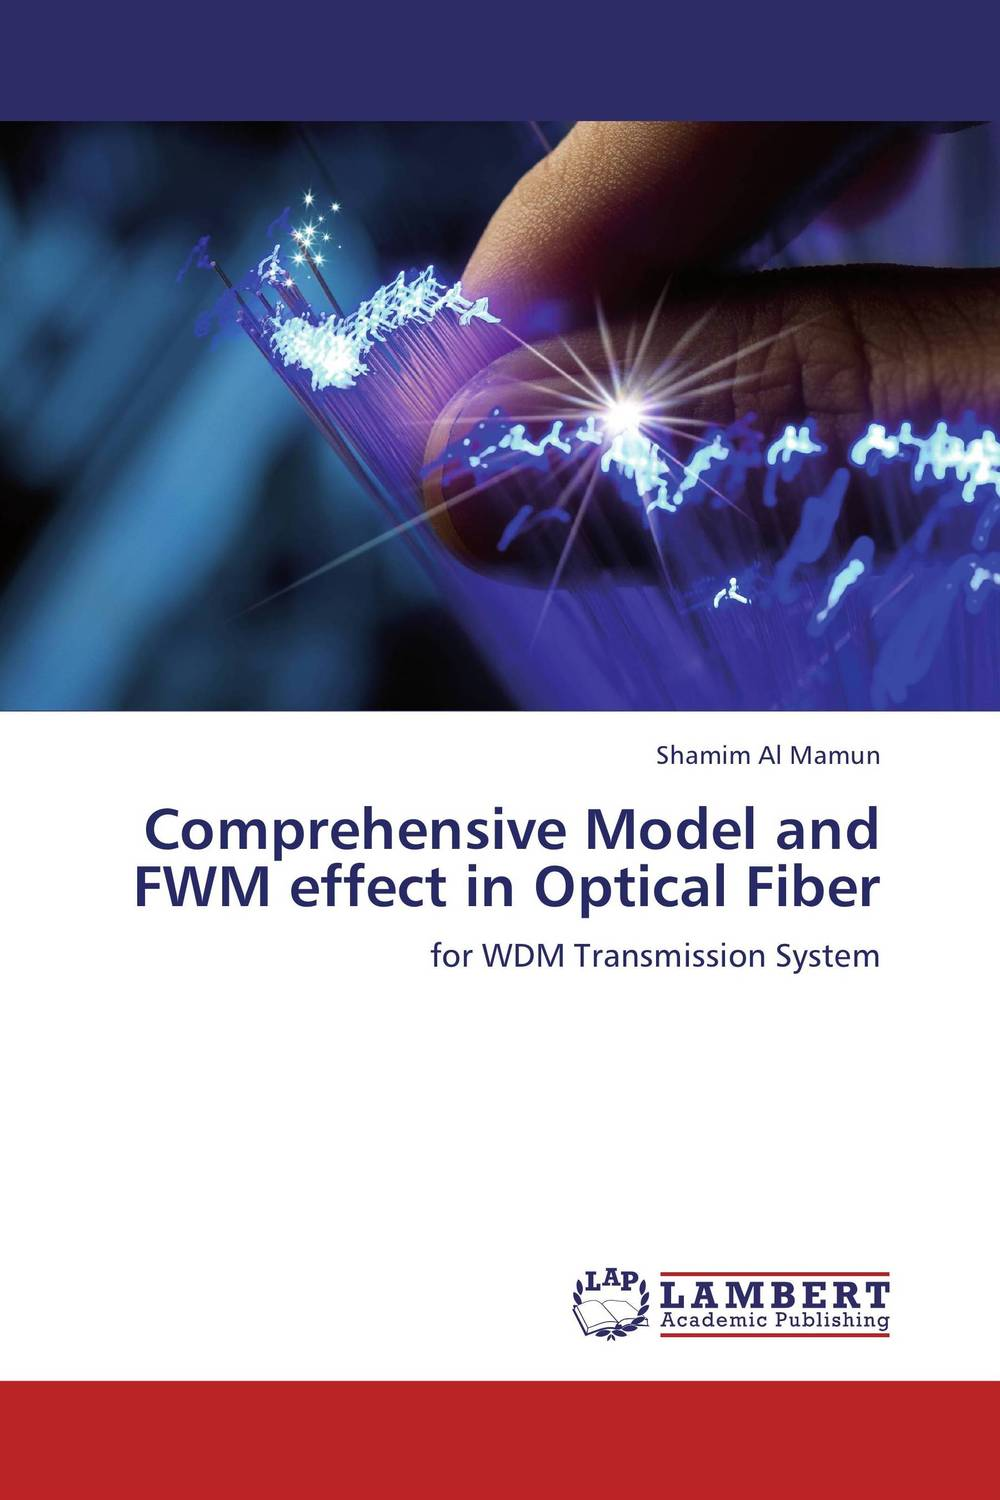 Comprehensive Model and FWM effect in Optical Fiber optical fiber transmission systems based on mode division multiplexing